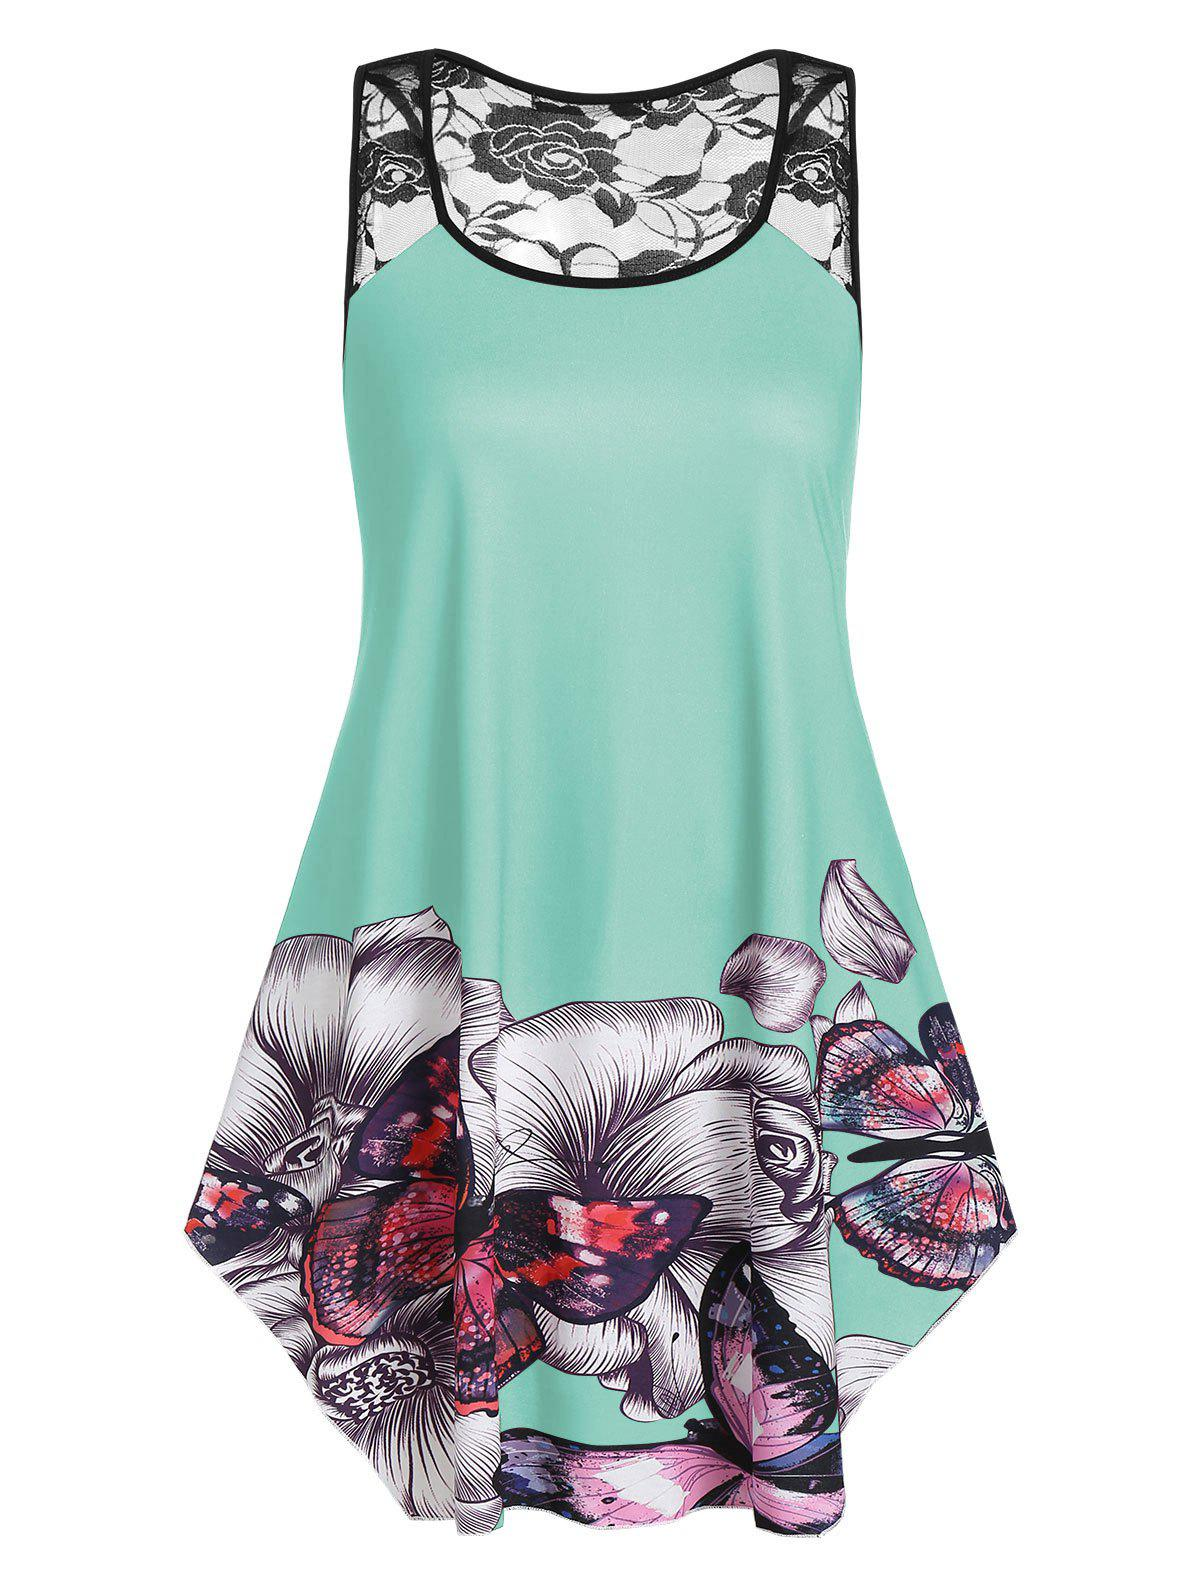 Plus Size Floral Butterfly Print Flare Tank Top - LIGHT SLATE 3X